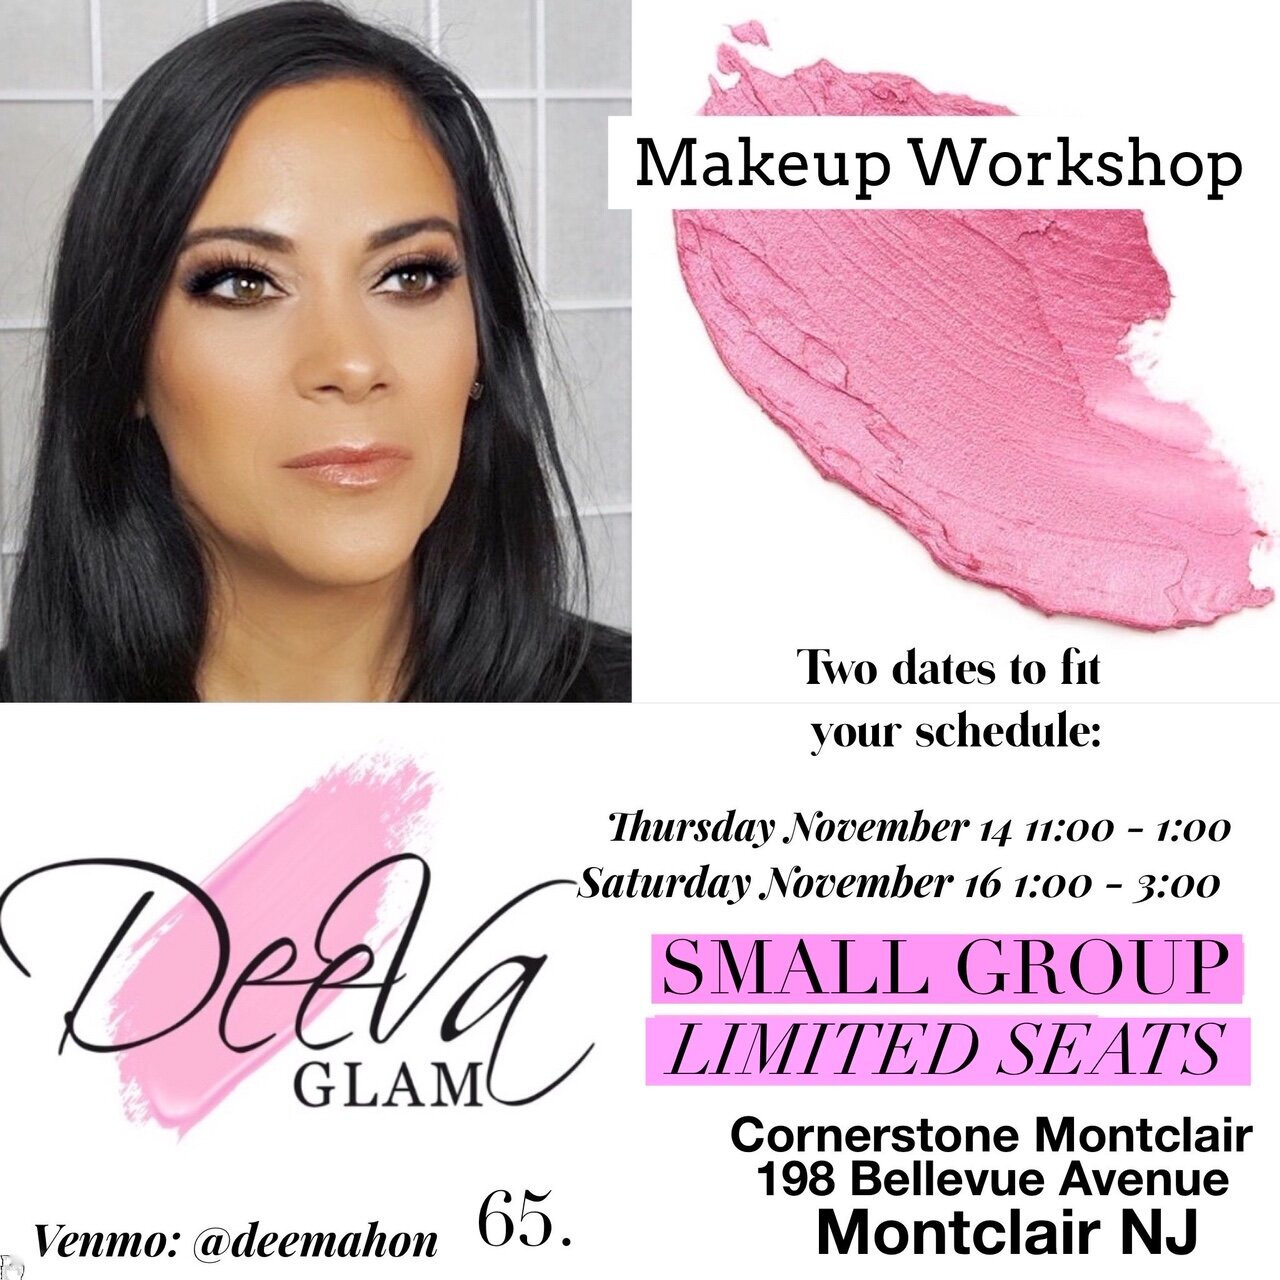 Makeup Works For Women Over 40